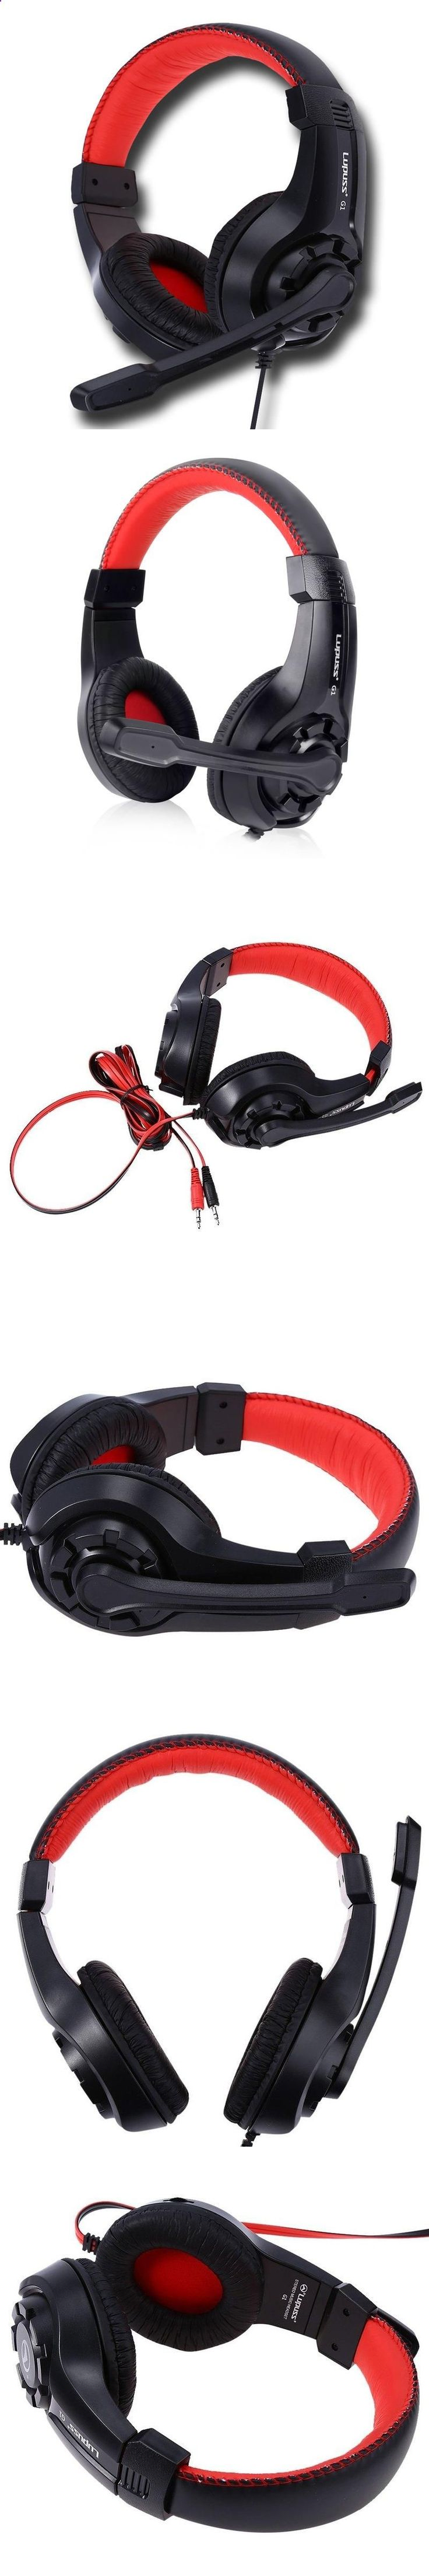 Sports Headphones - LUPUS G1 Adjustable 3.5mm Sport Headphone Game Gaming Headphones Headset Low Bass Stereo with Mic Wired for PC Laptop Computer - If you usually go out to run, walk or any other sport in which you usually carry music to accompany or motivate you, we have selected 13 models of sports headphones that we consider among the best in the market for different aspects, from comfort to use to design, sound quality or value for money, so that you find variety and can adjust th...